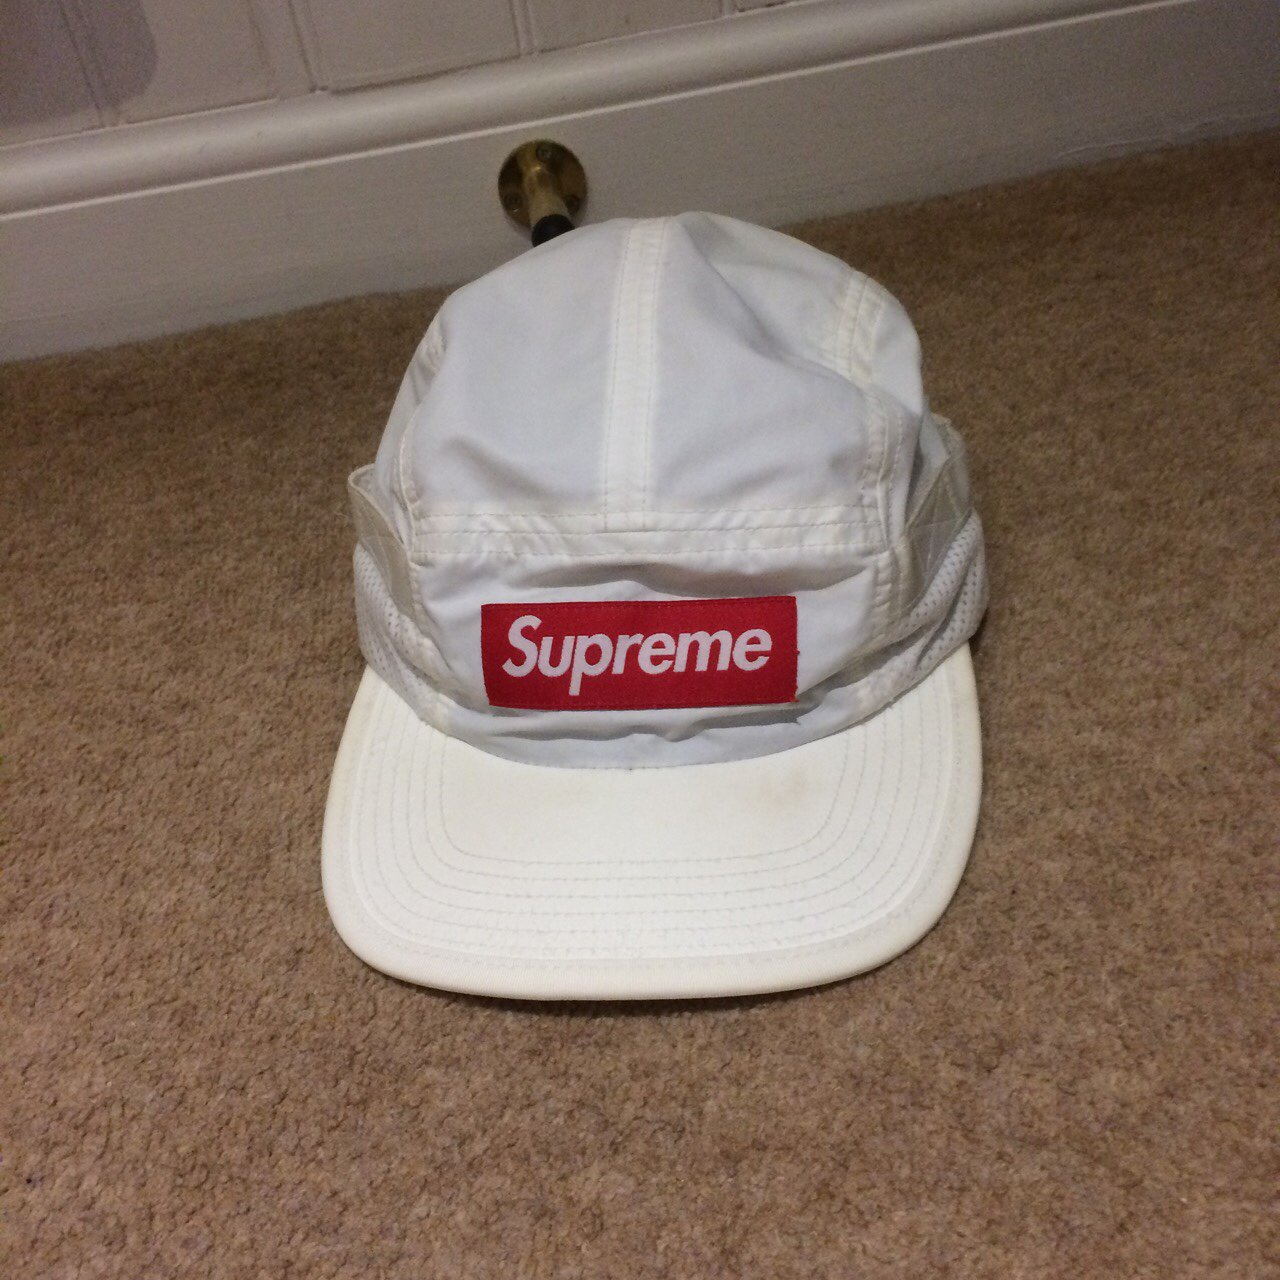 Supreme bogo hat - worn a bunch of times - great for the - a - Depop f7ebc7a5bfb